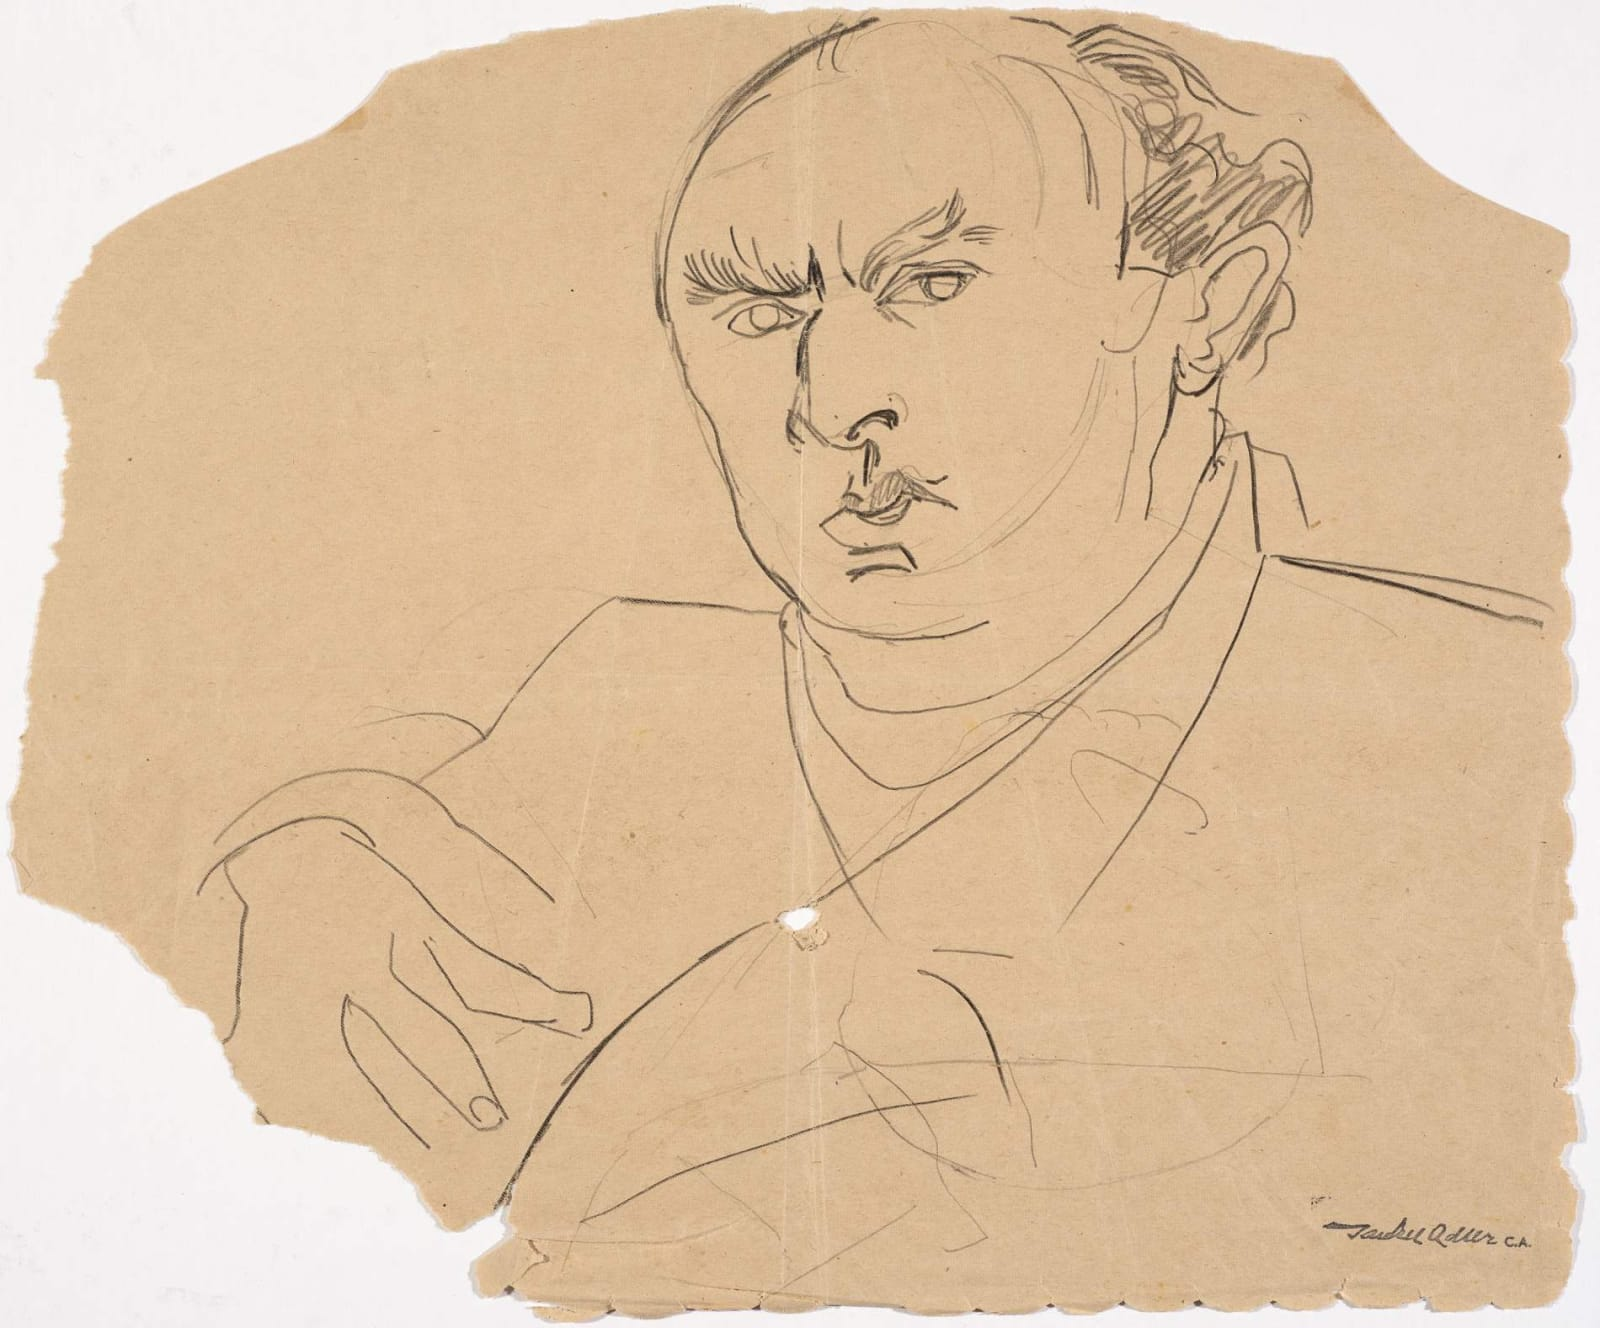 Jankel Adler (1895-1949) Self Portrait on torn paper n.d. Pencil on paper 29 x 33 cm Charles Bezalel Aukin Collection To see and discover more about this artist click here